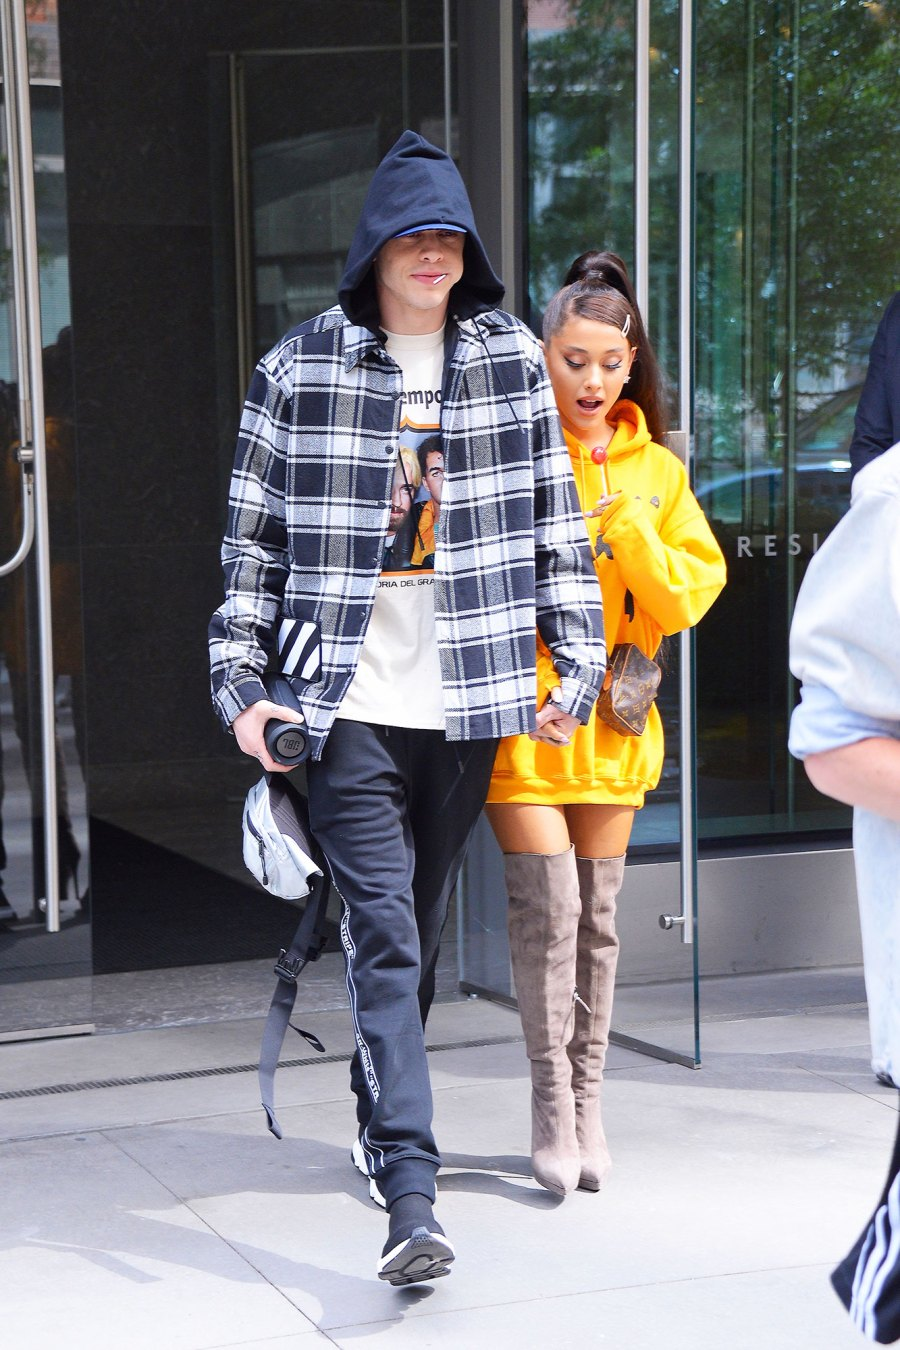 Ariana Grande and Pete Davidson Cloney Is the Streetwear Brand That Ariana Grande and JustinBieber Love